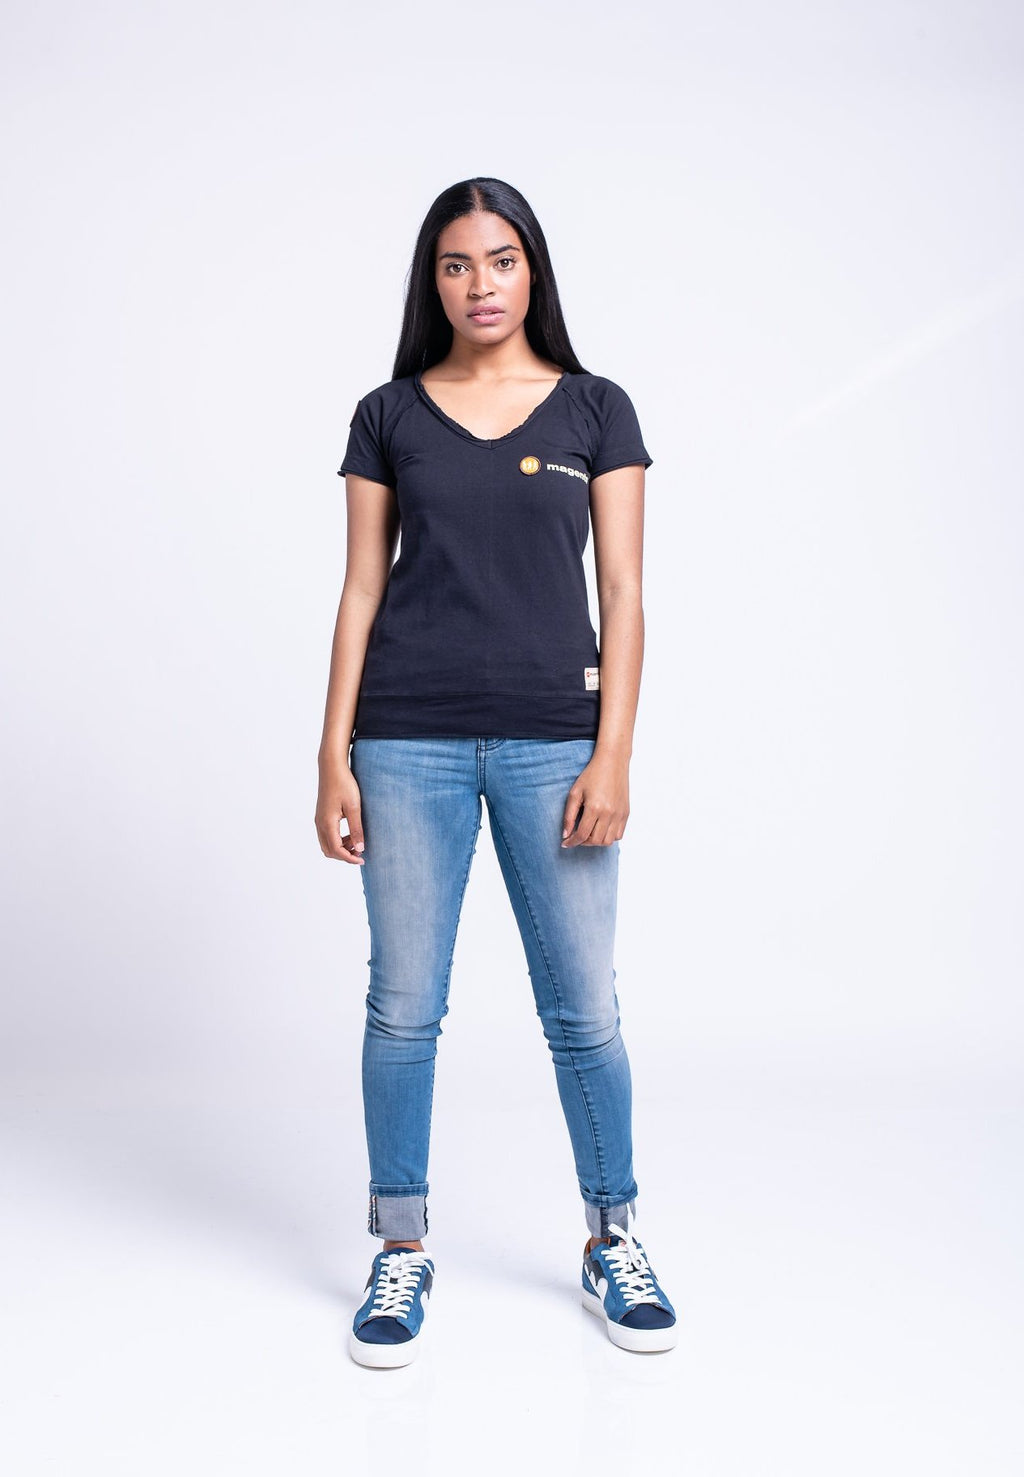 MAGENTS LADIES WIDE NECK TEE - BLACK